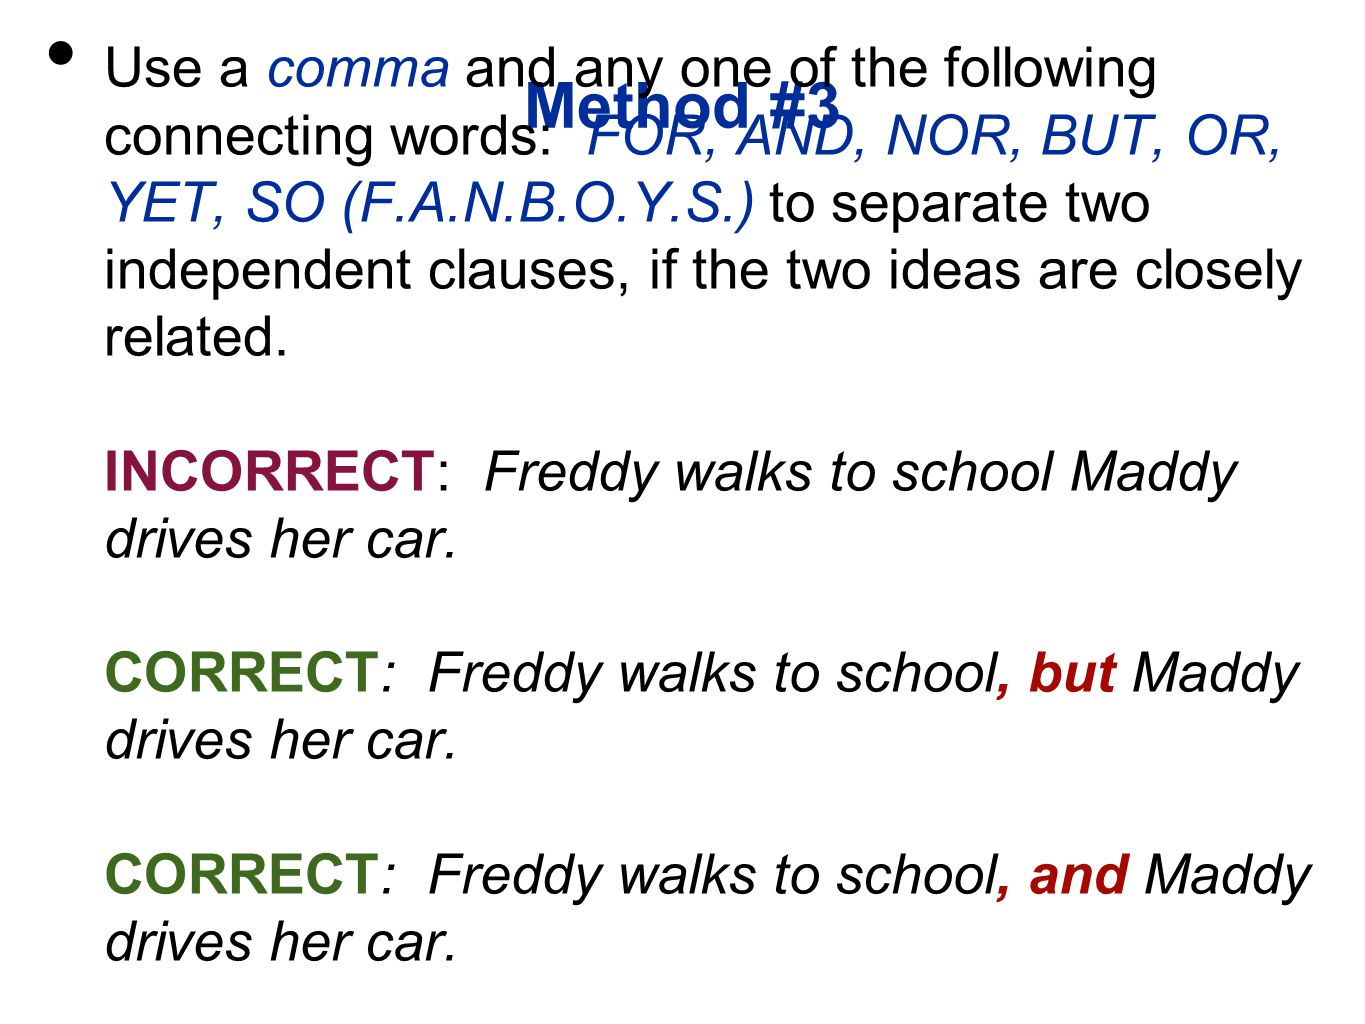 Method #3 Use a comma and any one of the following connecting words: FOR, AND, NOR, BUT, OR, YET, SO (F.A.N.B.O.Y.S.) to separate two independent clauses, if the two ideas are closely related.